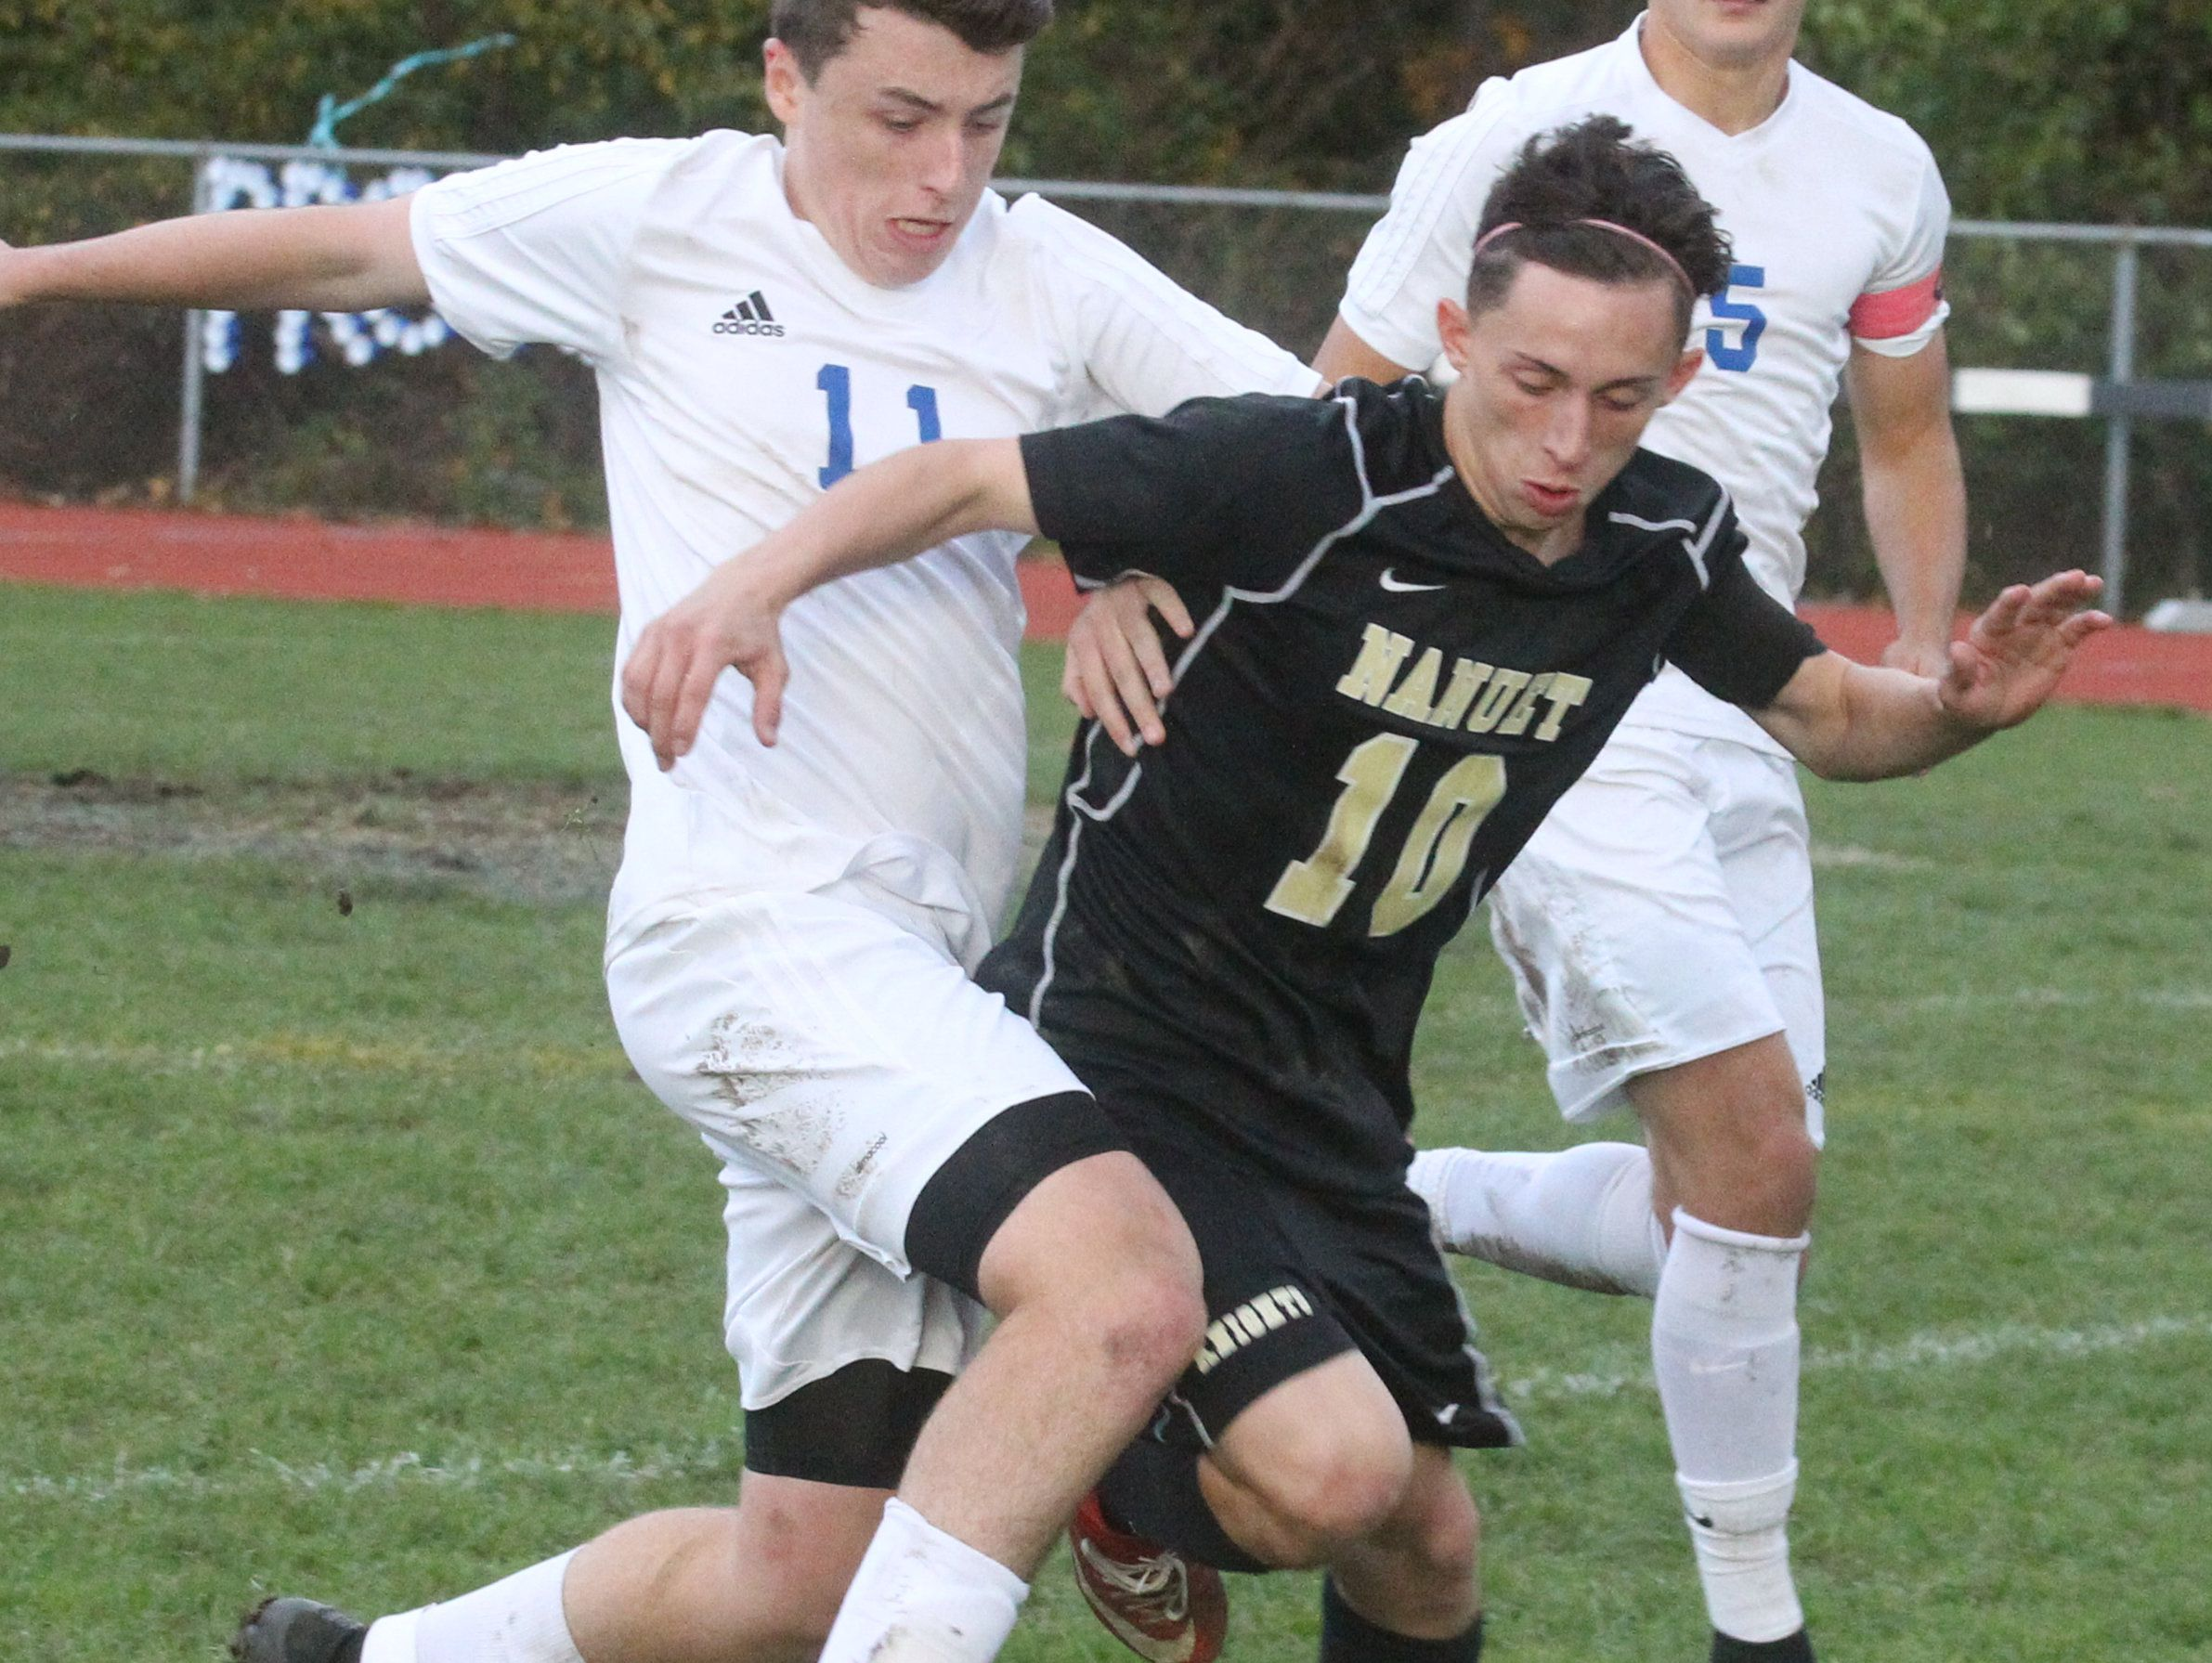 Pearl River's Dara Donnelly, left, fights for the ball with Nanuet's Nick Iozzo during their Class A boys soccer quarterfinal at Pear River Oct. 24, 2016. Pearl River won 2-1 in overtime. 6 23